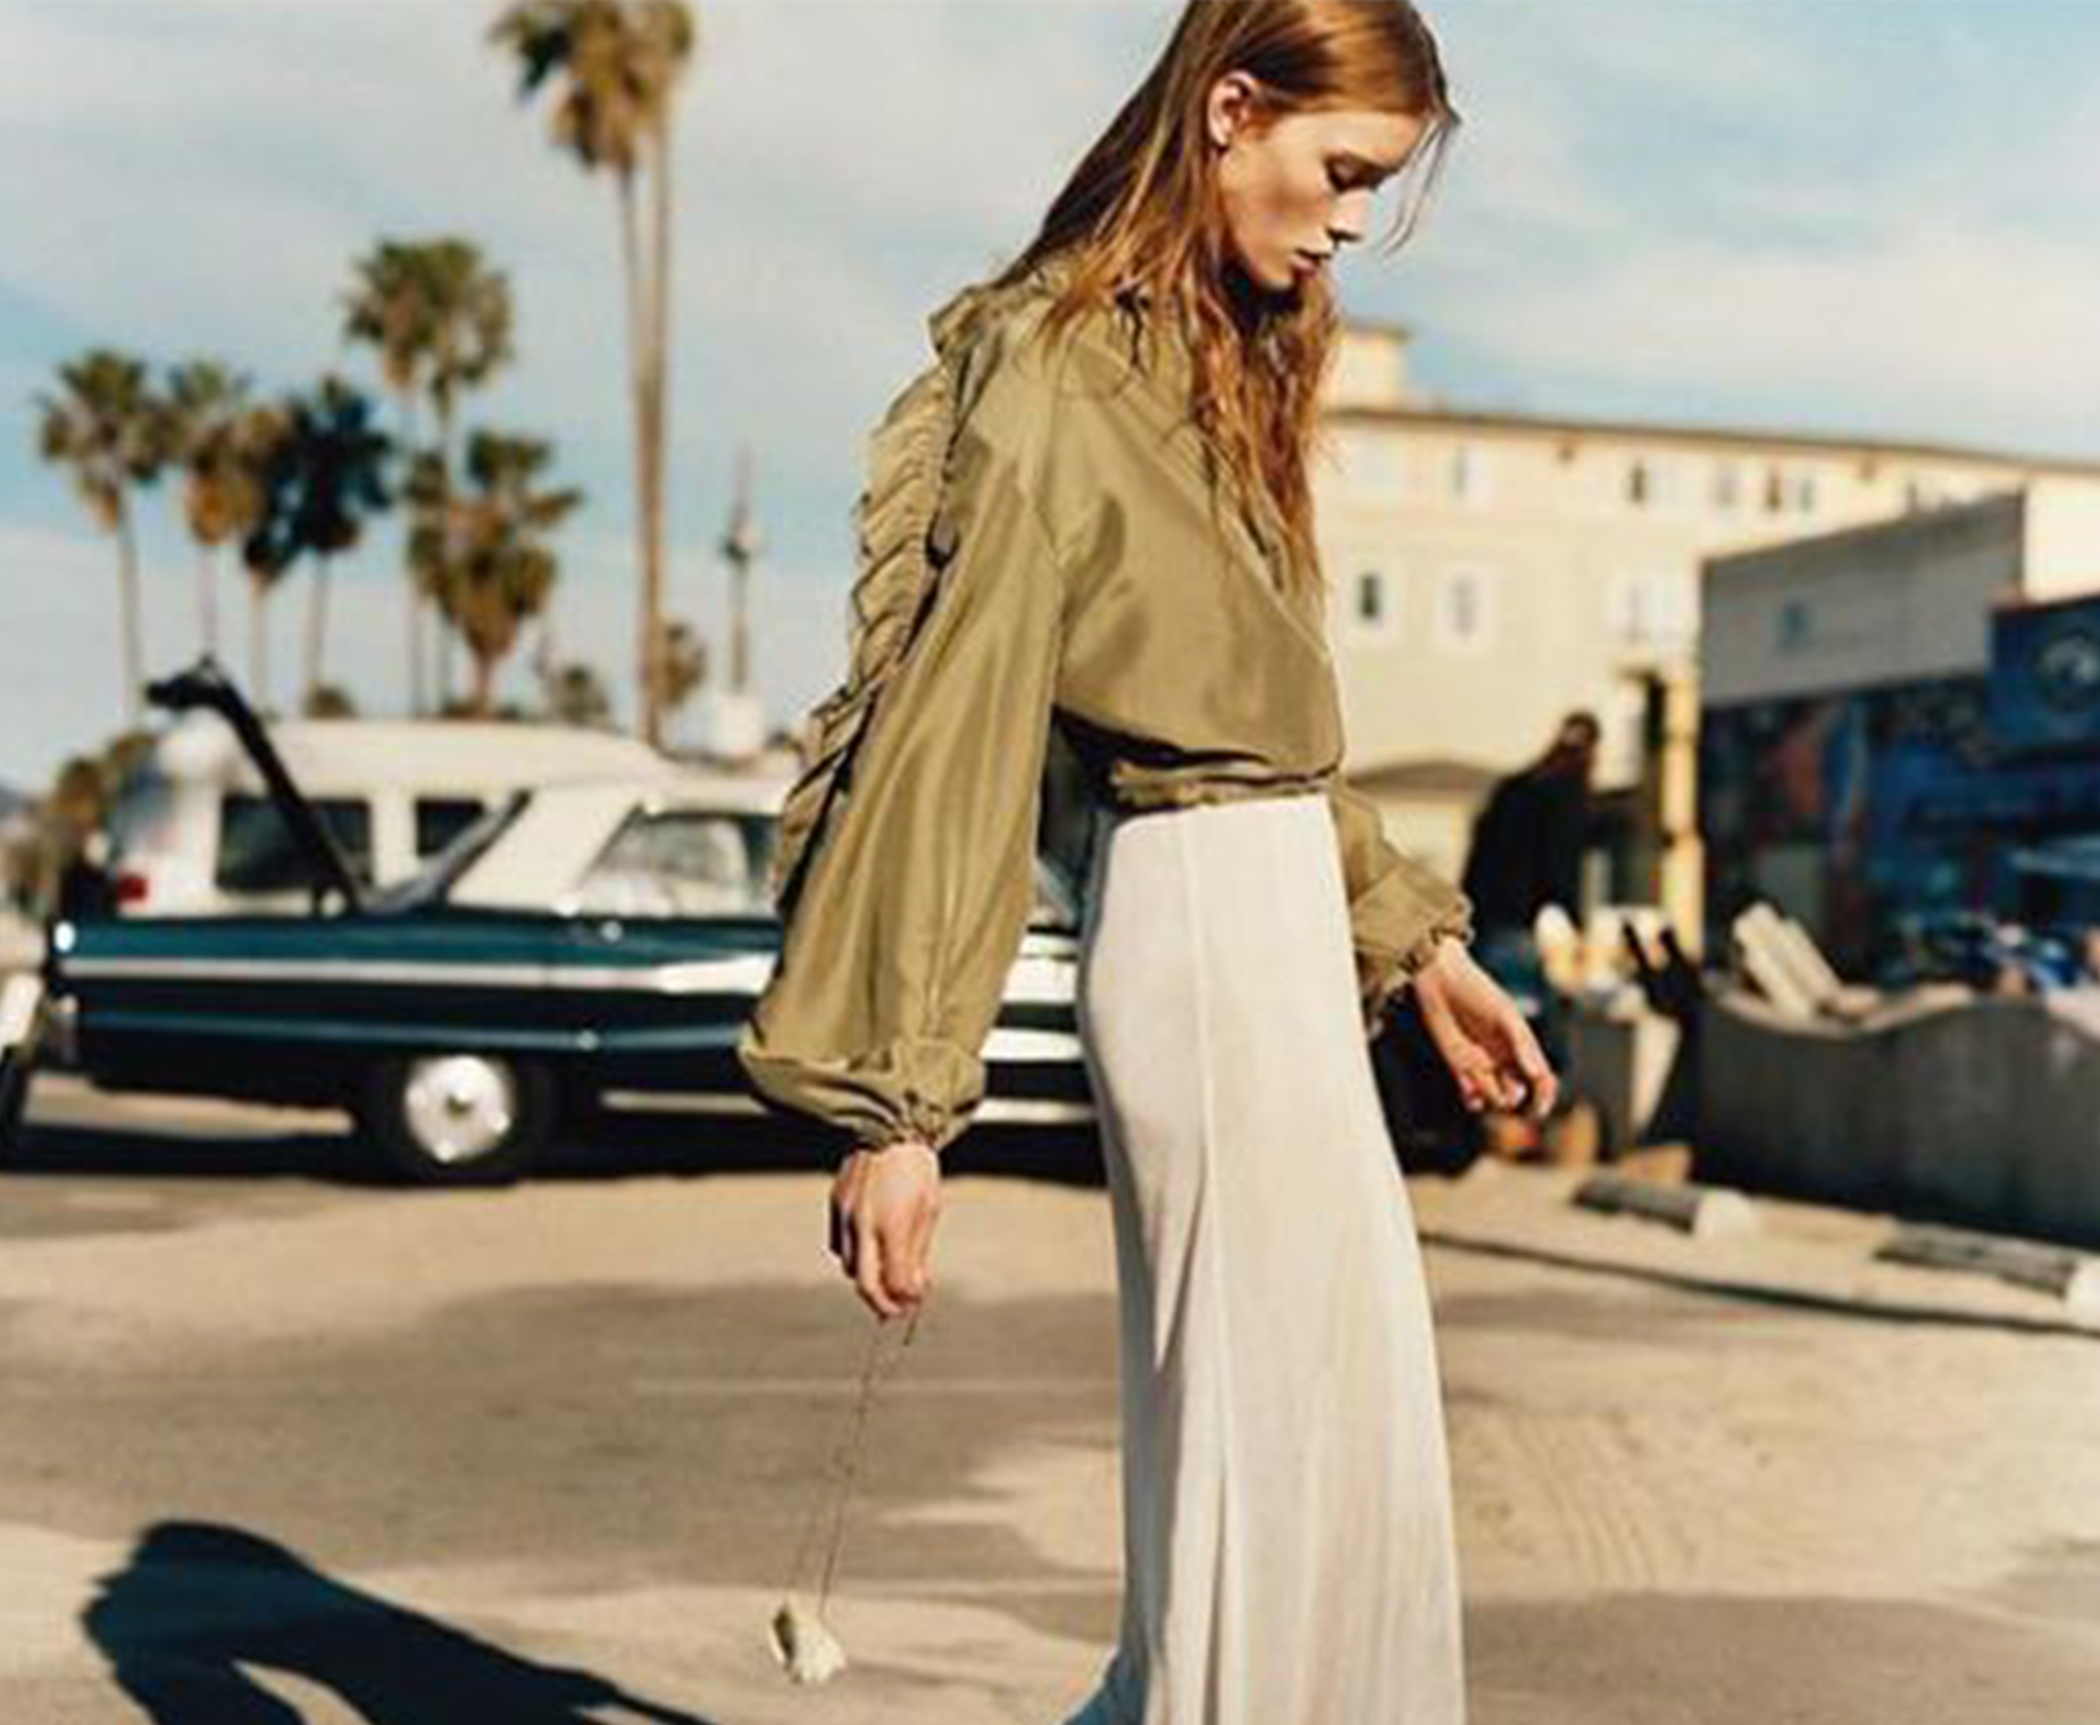 (photo:  Matteo Montanari )  CALIFORNIA CASUAL  For Spring / Summer 2019, we are seeing comfort as an overall essential aesthetic. There is an overarching easy, yet intentional put together vibe for this season. Rather than looking to other countries for this trend, California classic style seems to be popping up as the obvious underlying influence.